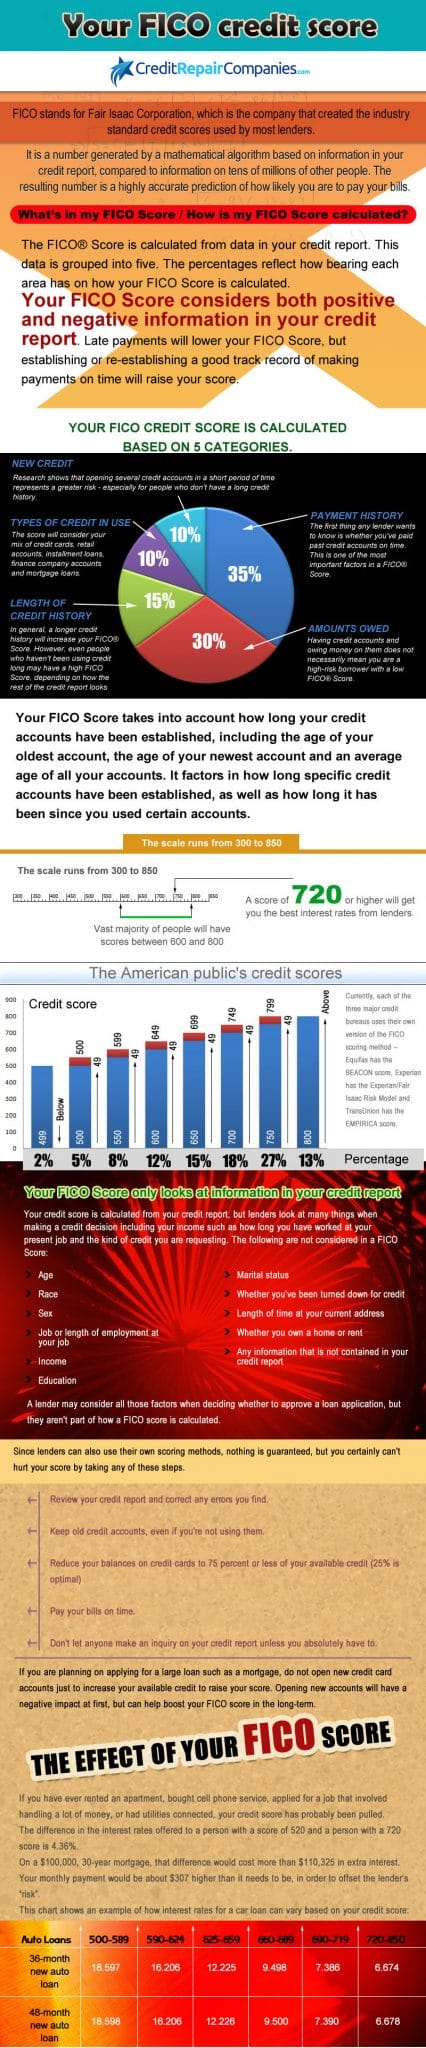 FICO Credit Score Facts Infographic